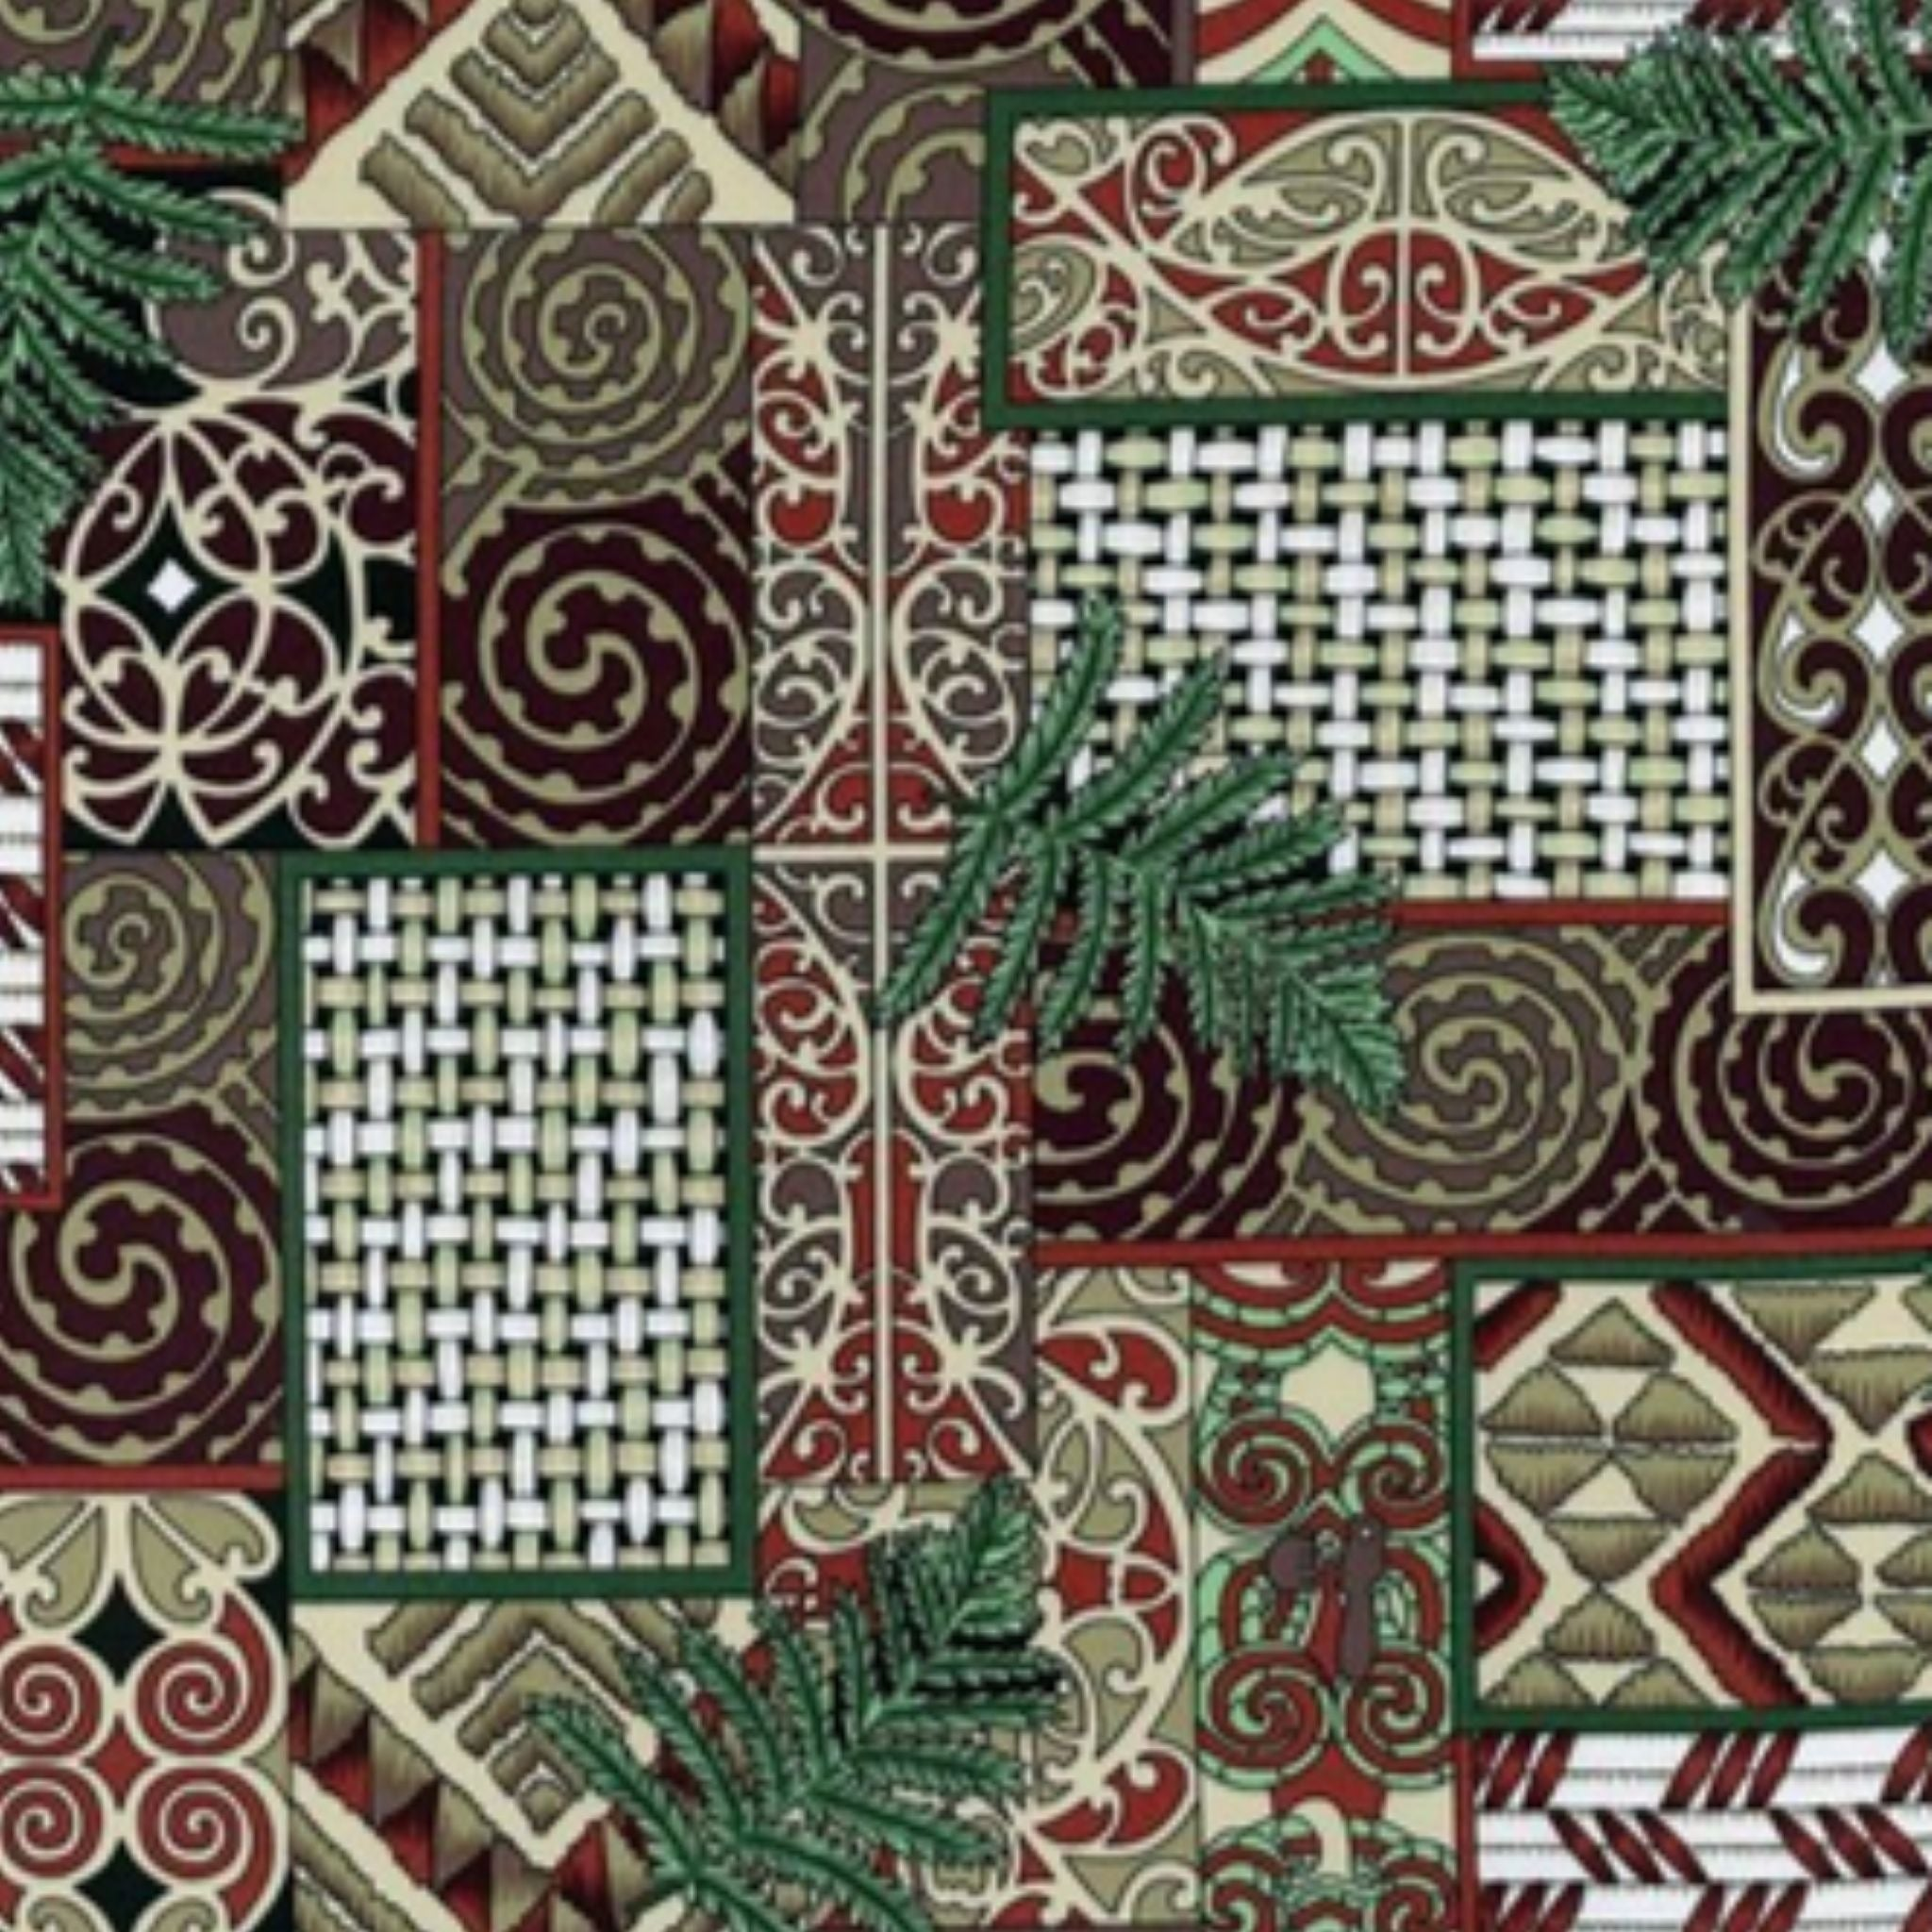 Māori traditional designs and patterns in a variety of browns and muted reds, with fern leaves.